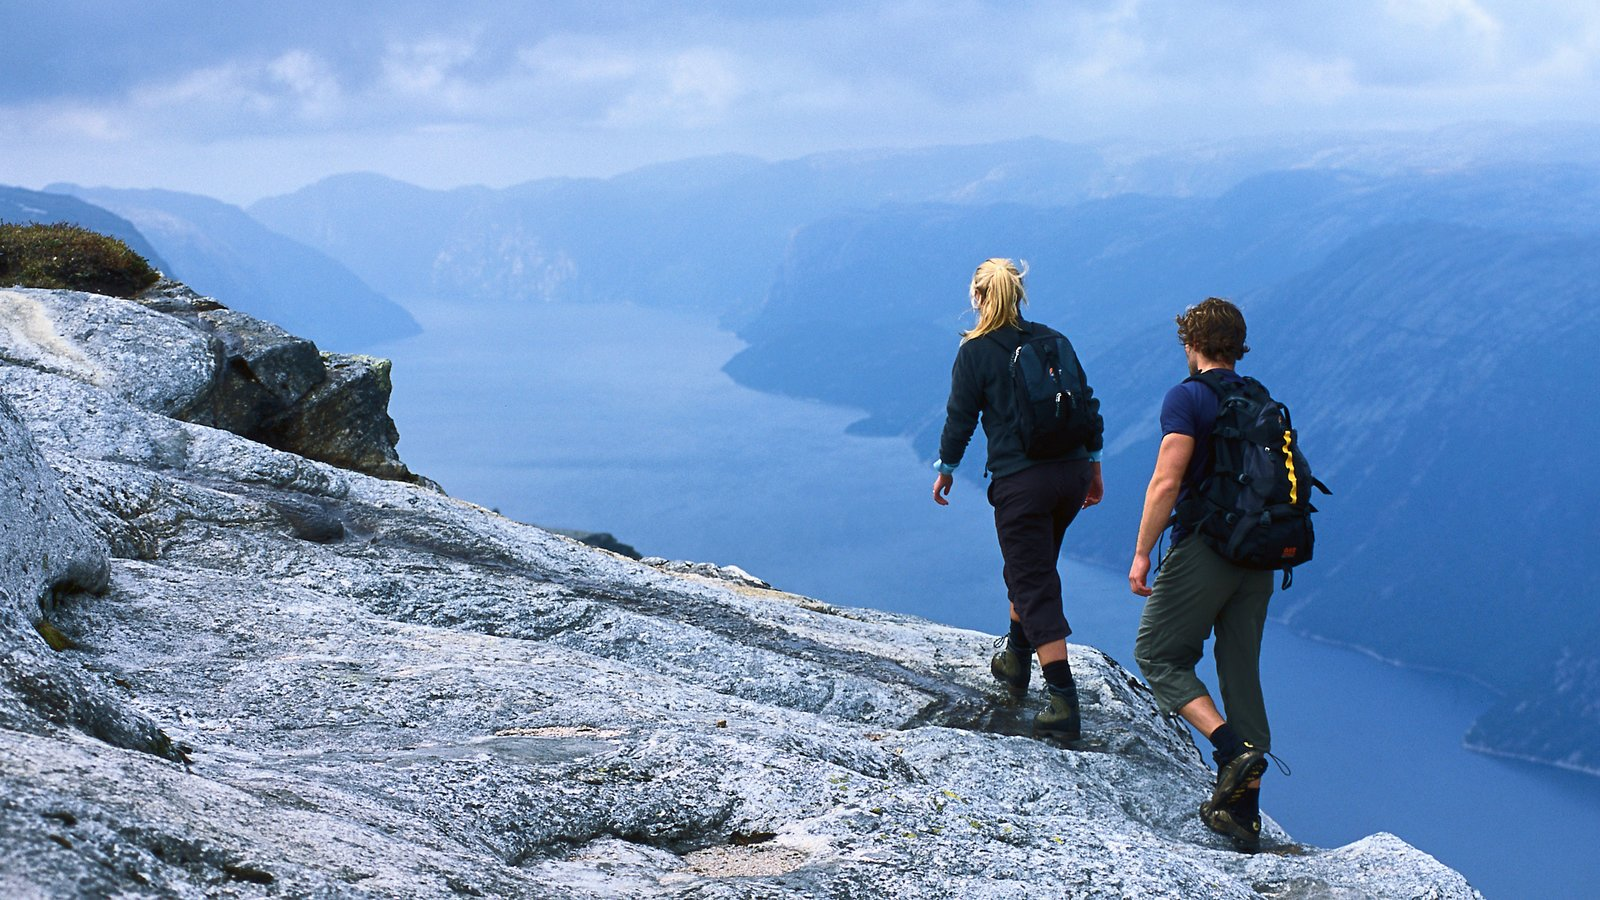 Kjerag showing hiking or walking, landscape views and mountains